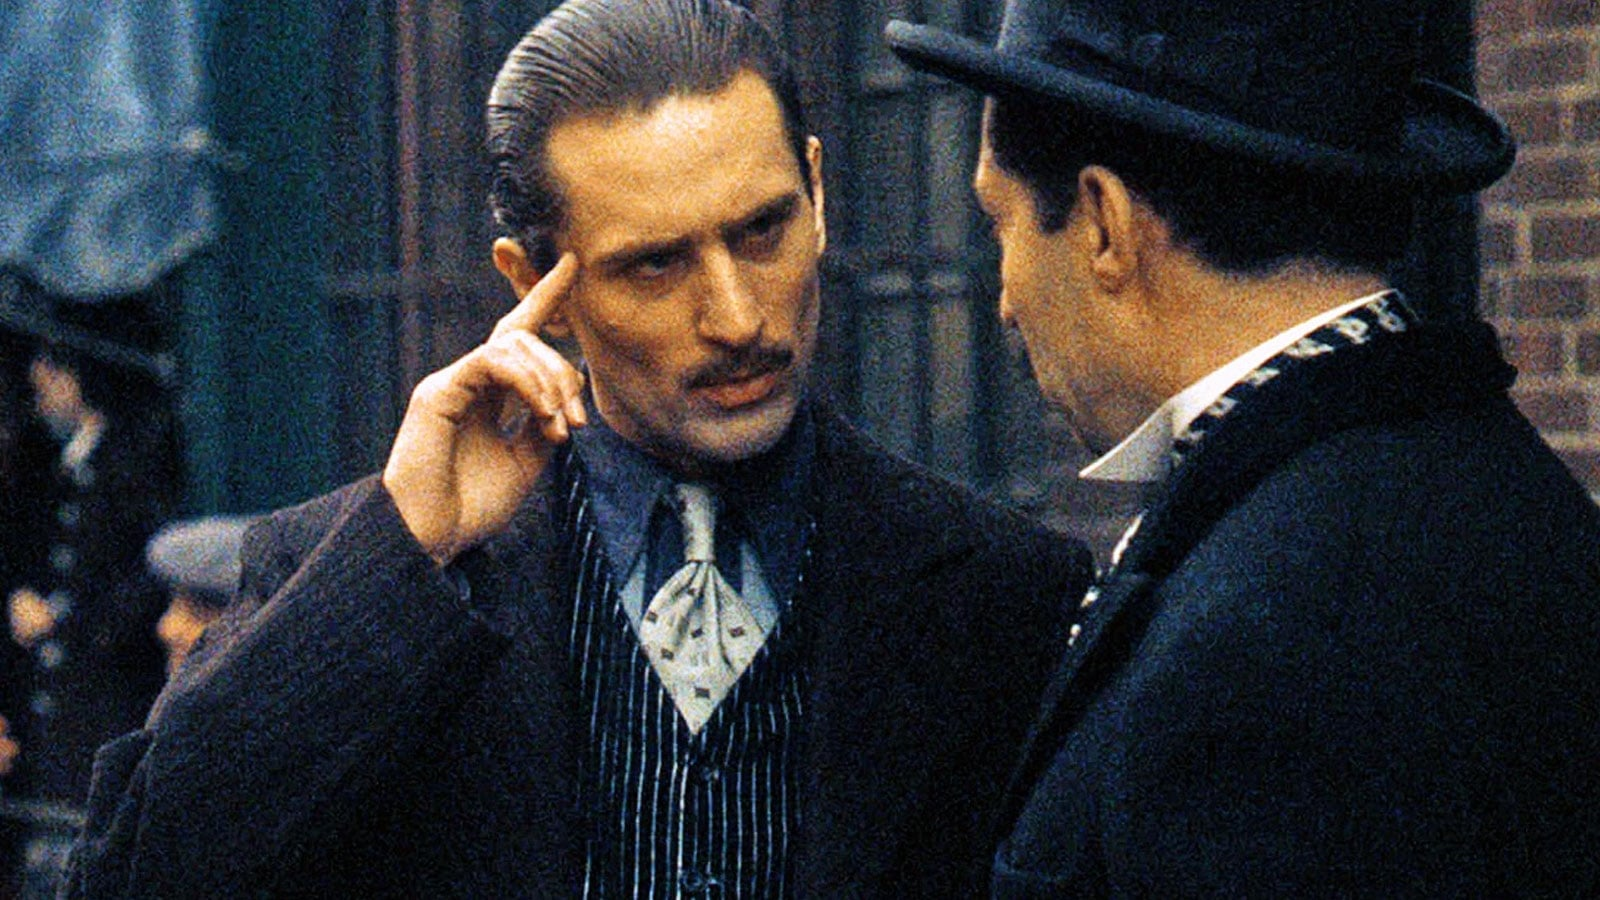 Full Free Watch The Godfather: Part II 1974 Movie Trailer